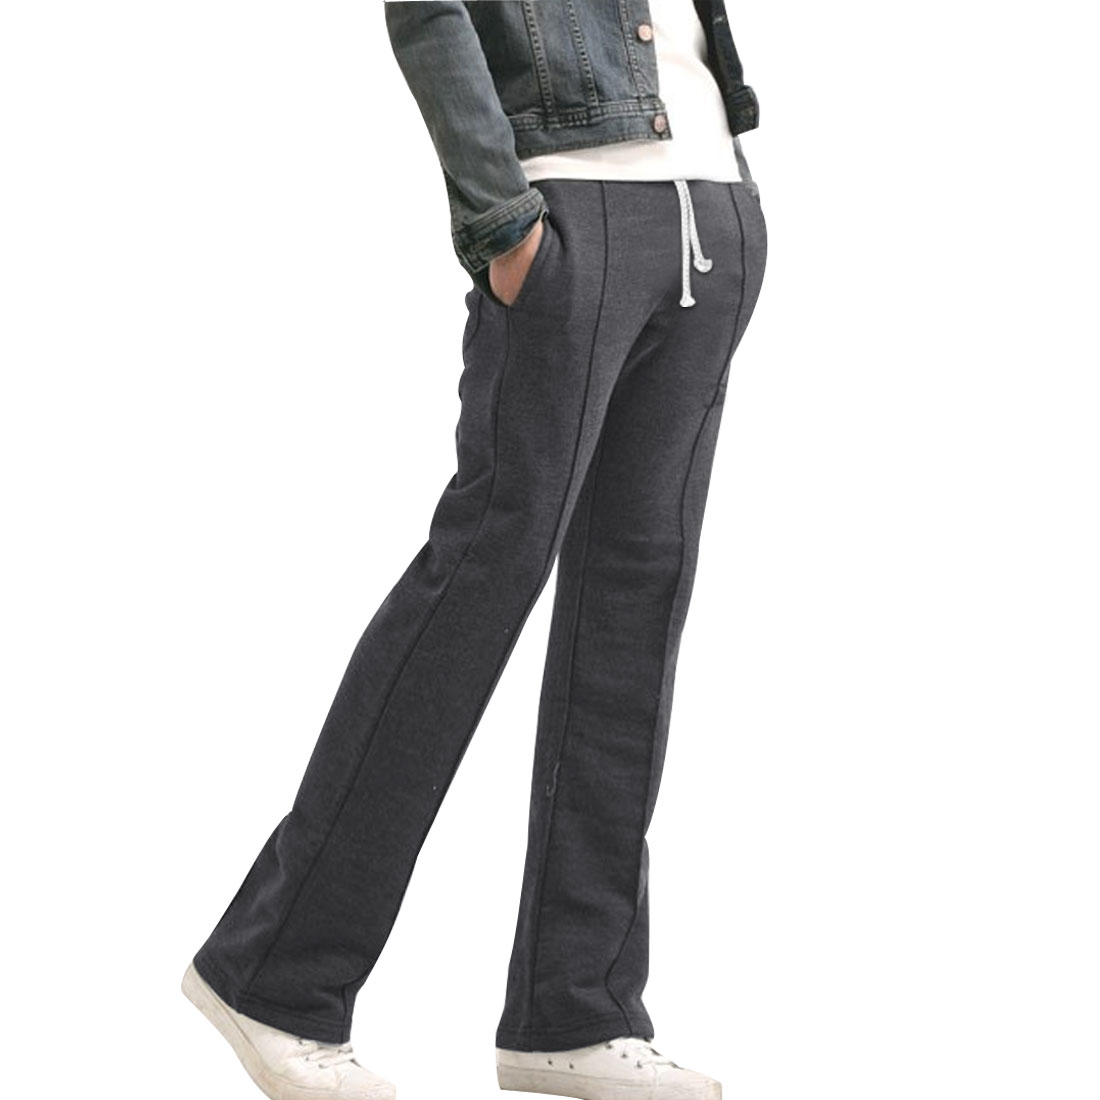 Mens Dark Gray Korea Fashion Elasitc Wasit Straight Leg Pants W29